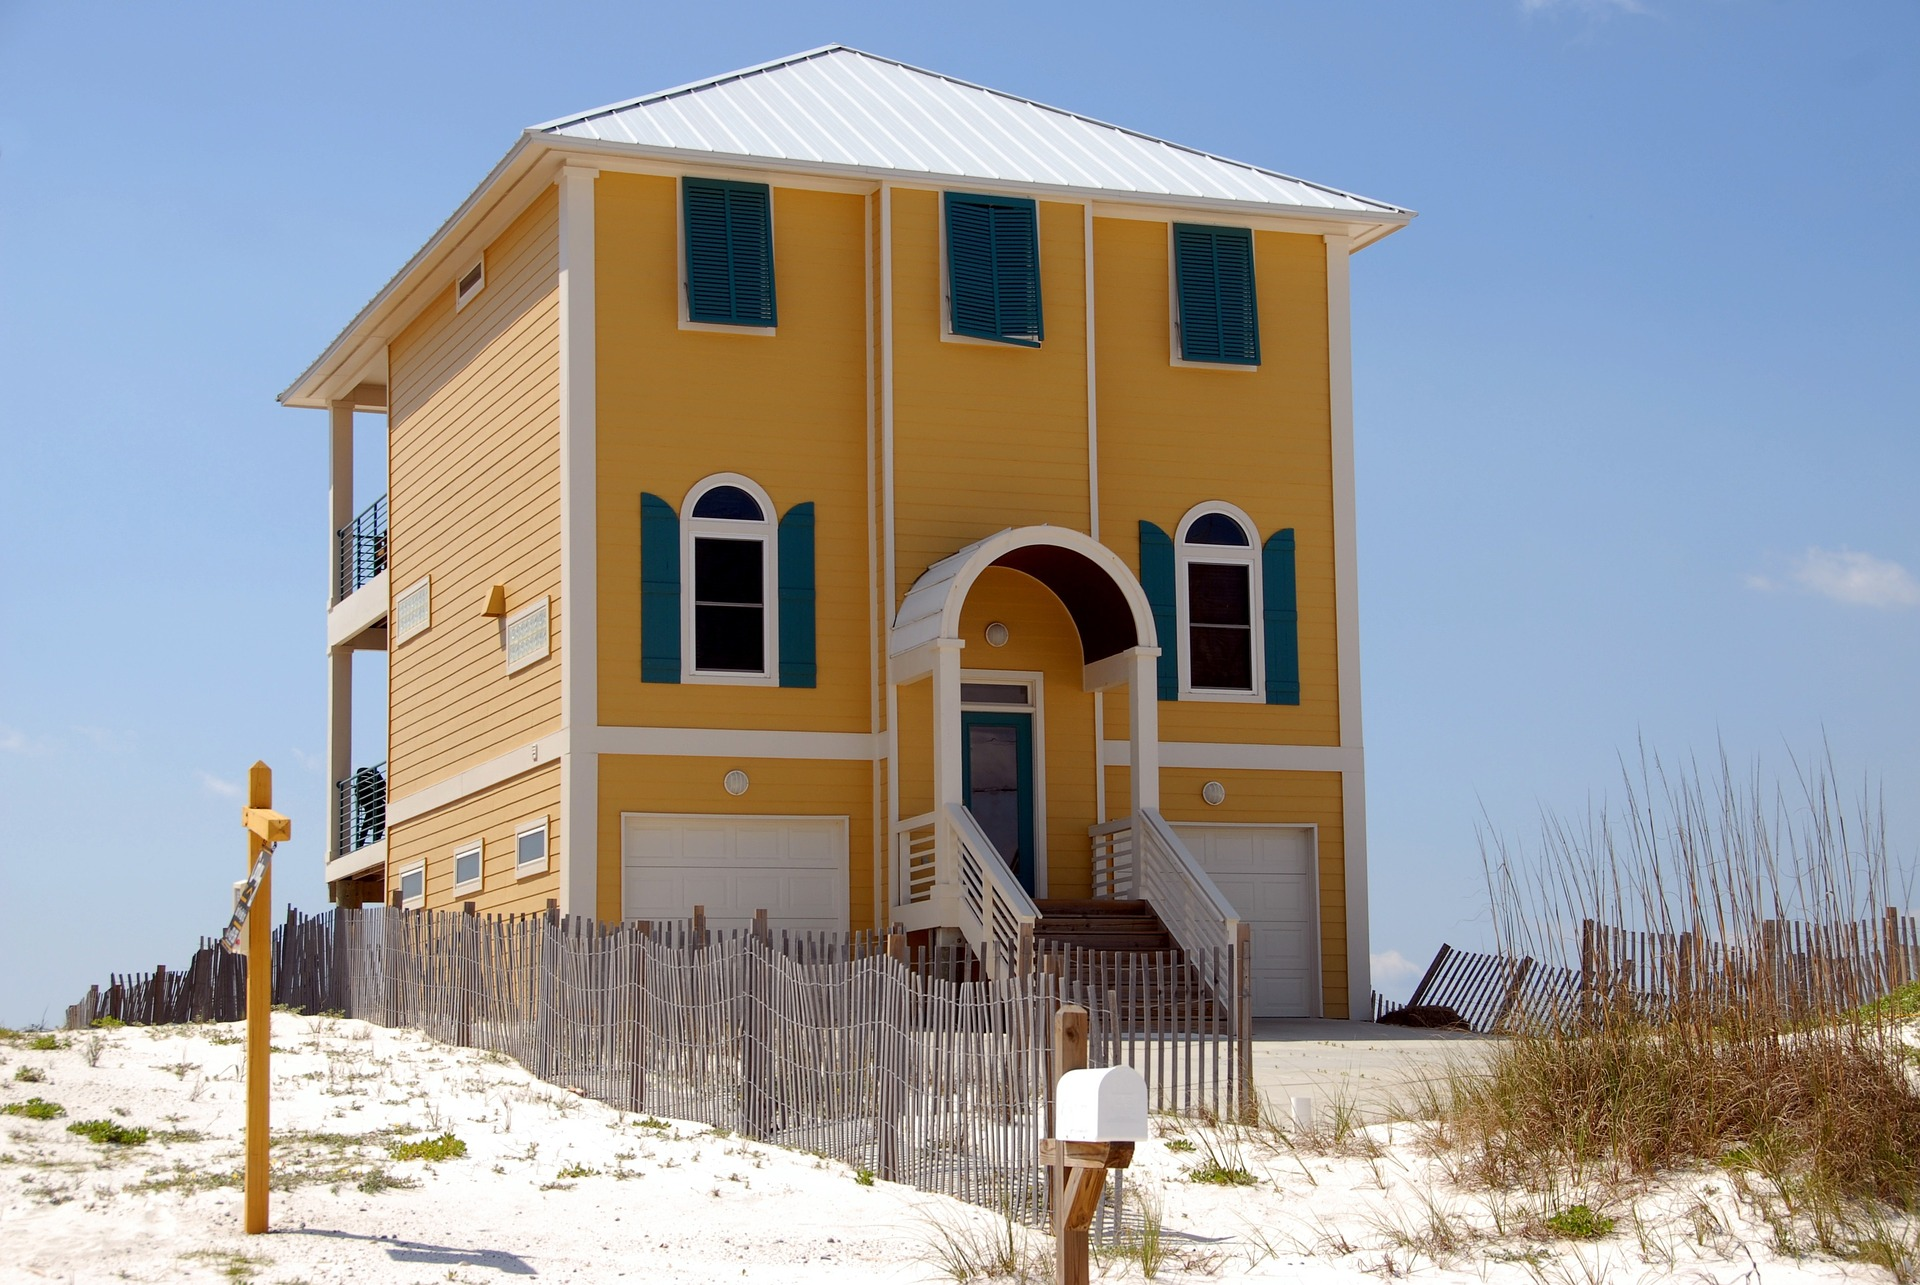 A beach house one might consider when buying a house in Florida as a foreigner